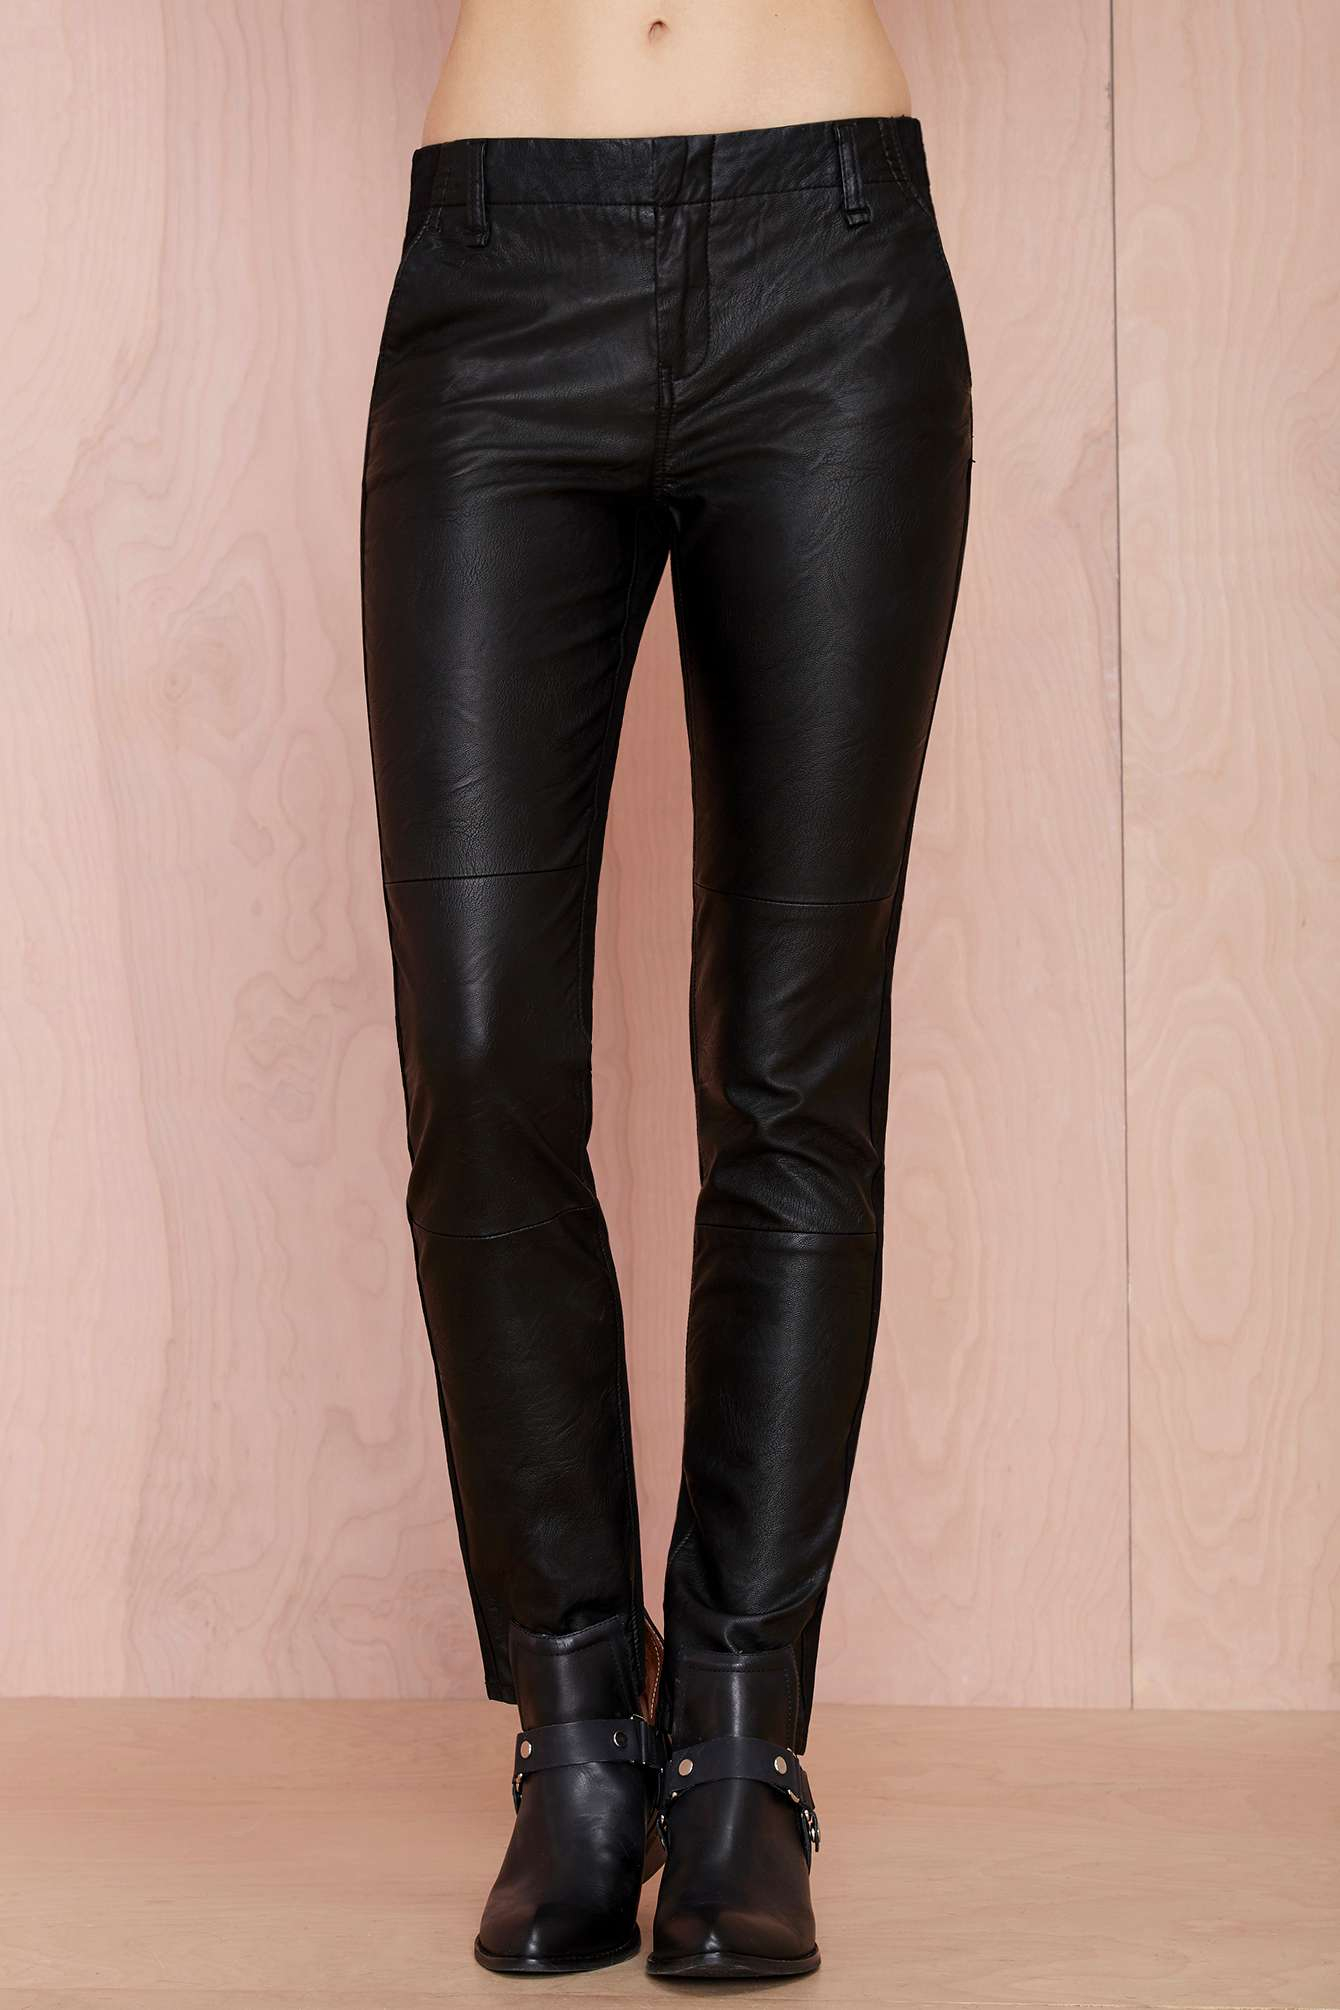 lyst  nasty gal blank nyc slap happy vegan leather pants